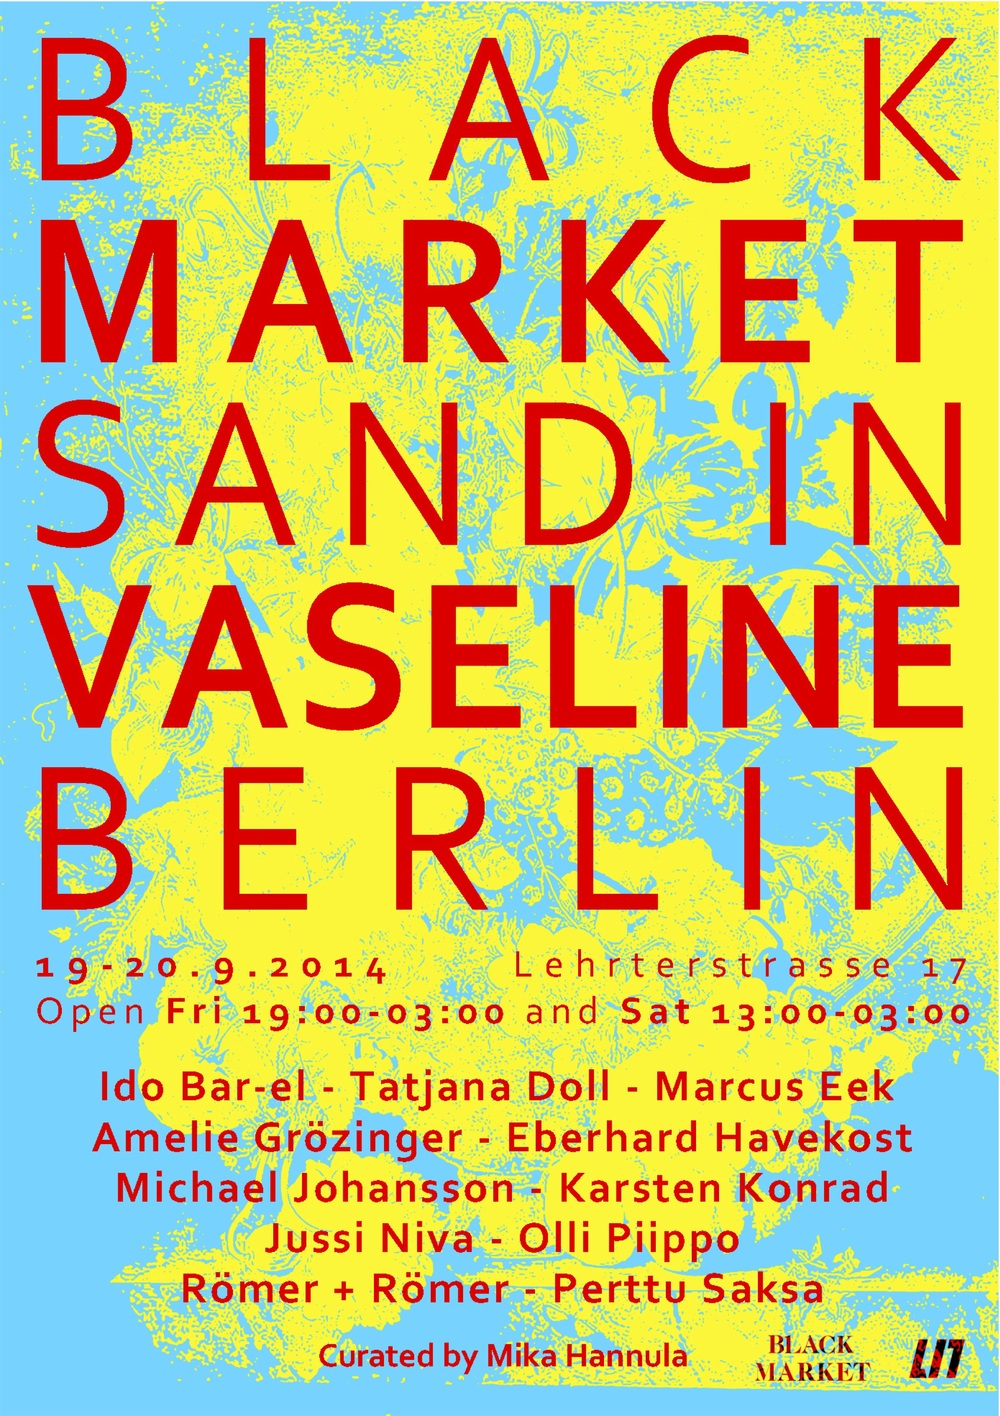 - Black Market – Sand in Vaseline, L17 project space, Berlin, September 2014